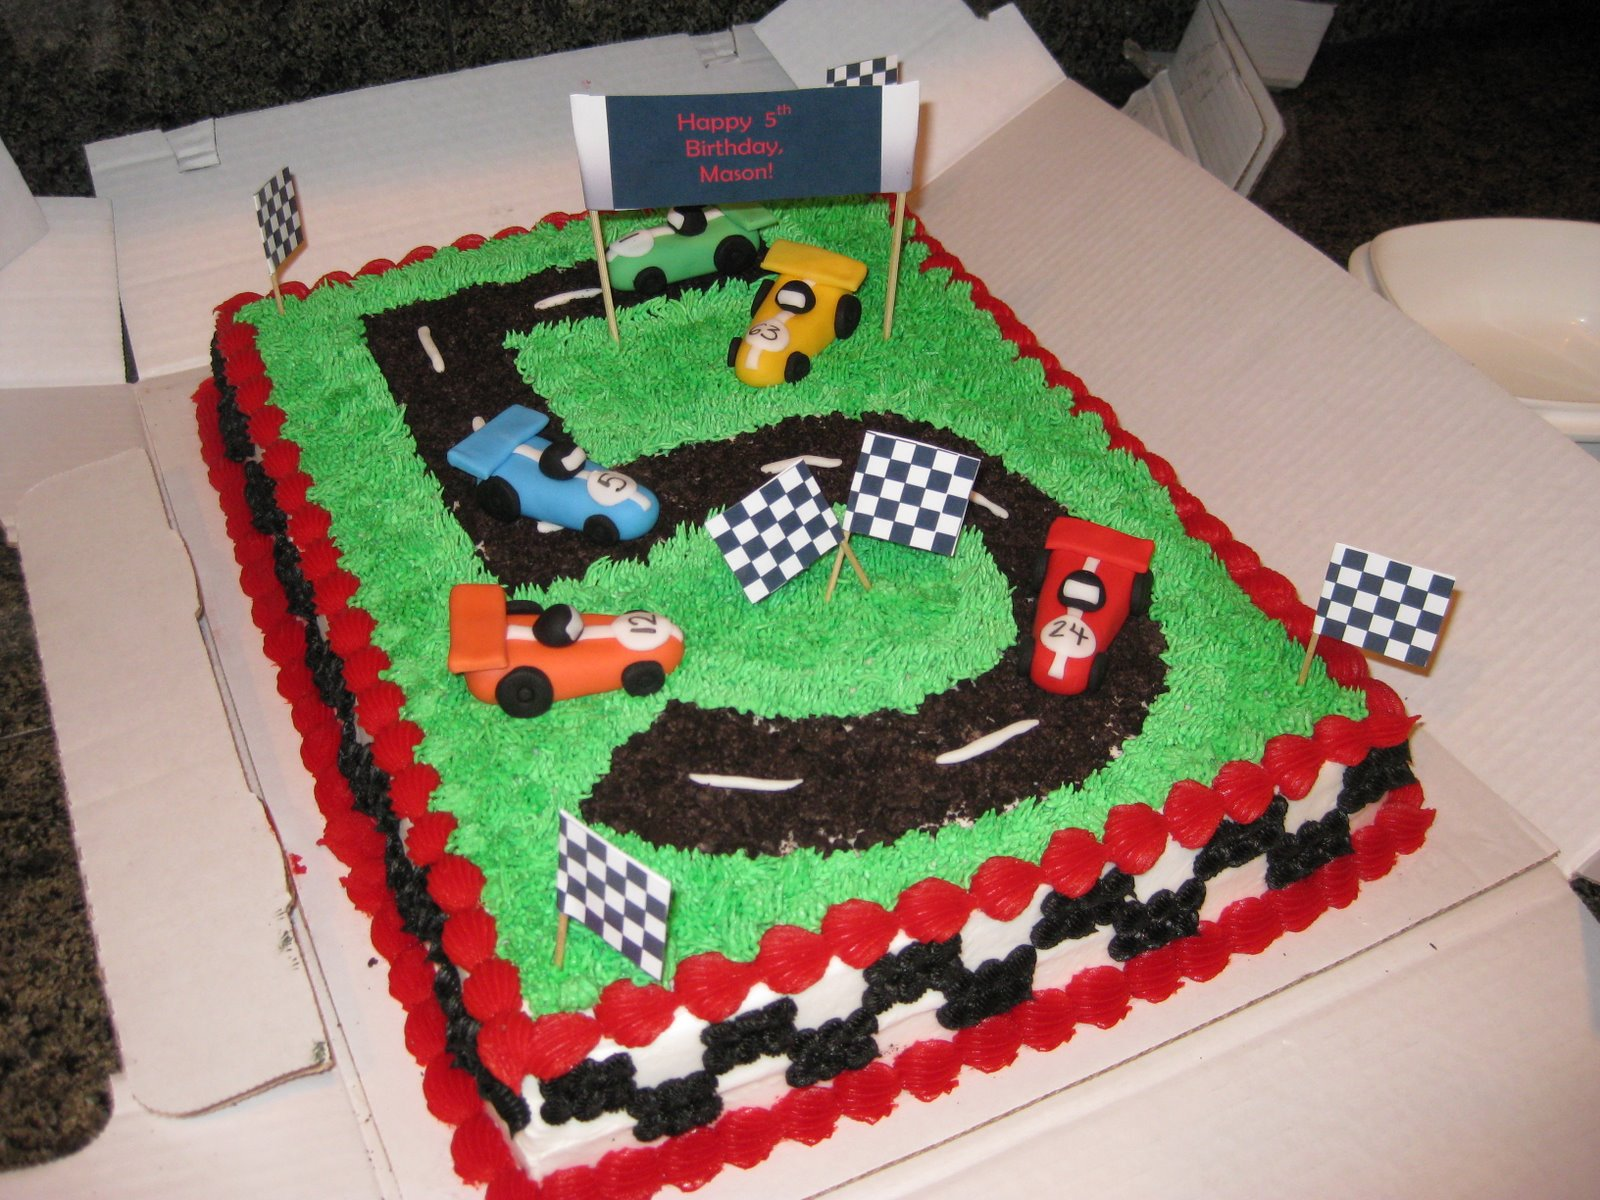 Car Cake Images Download : Cars cake - updated with pictures - BabyCenter